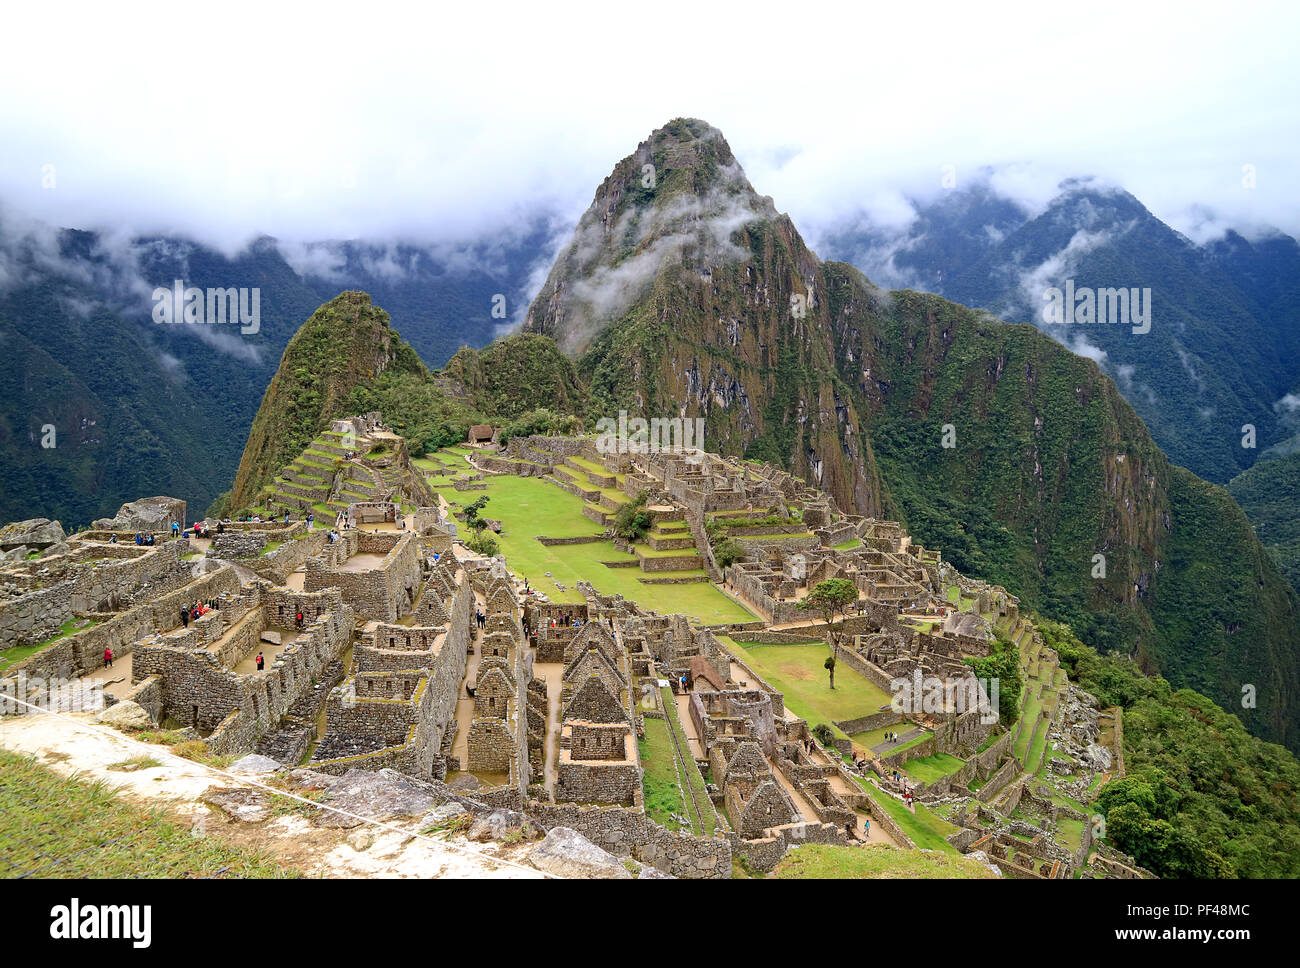 Machu Picchu on a Rainy Day, UNESCO World Heritage Site in Cusco Region, Urubamba Province, Peru, Archaeological site - Stock Image